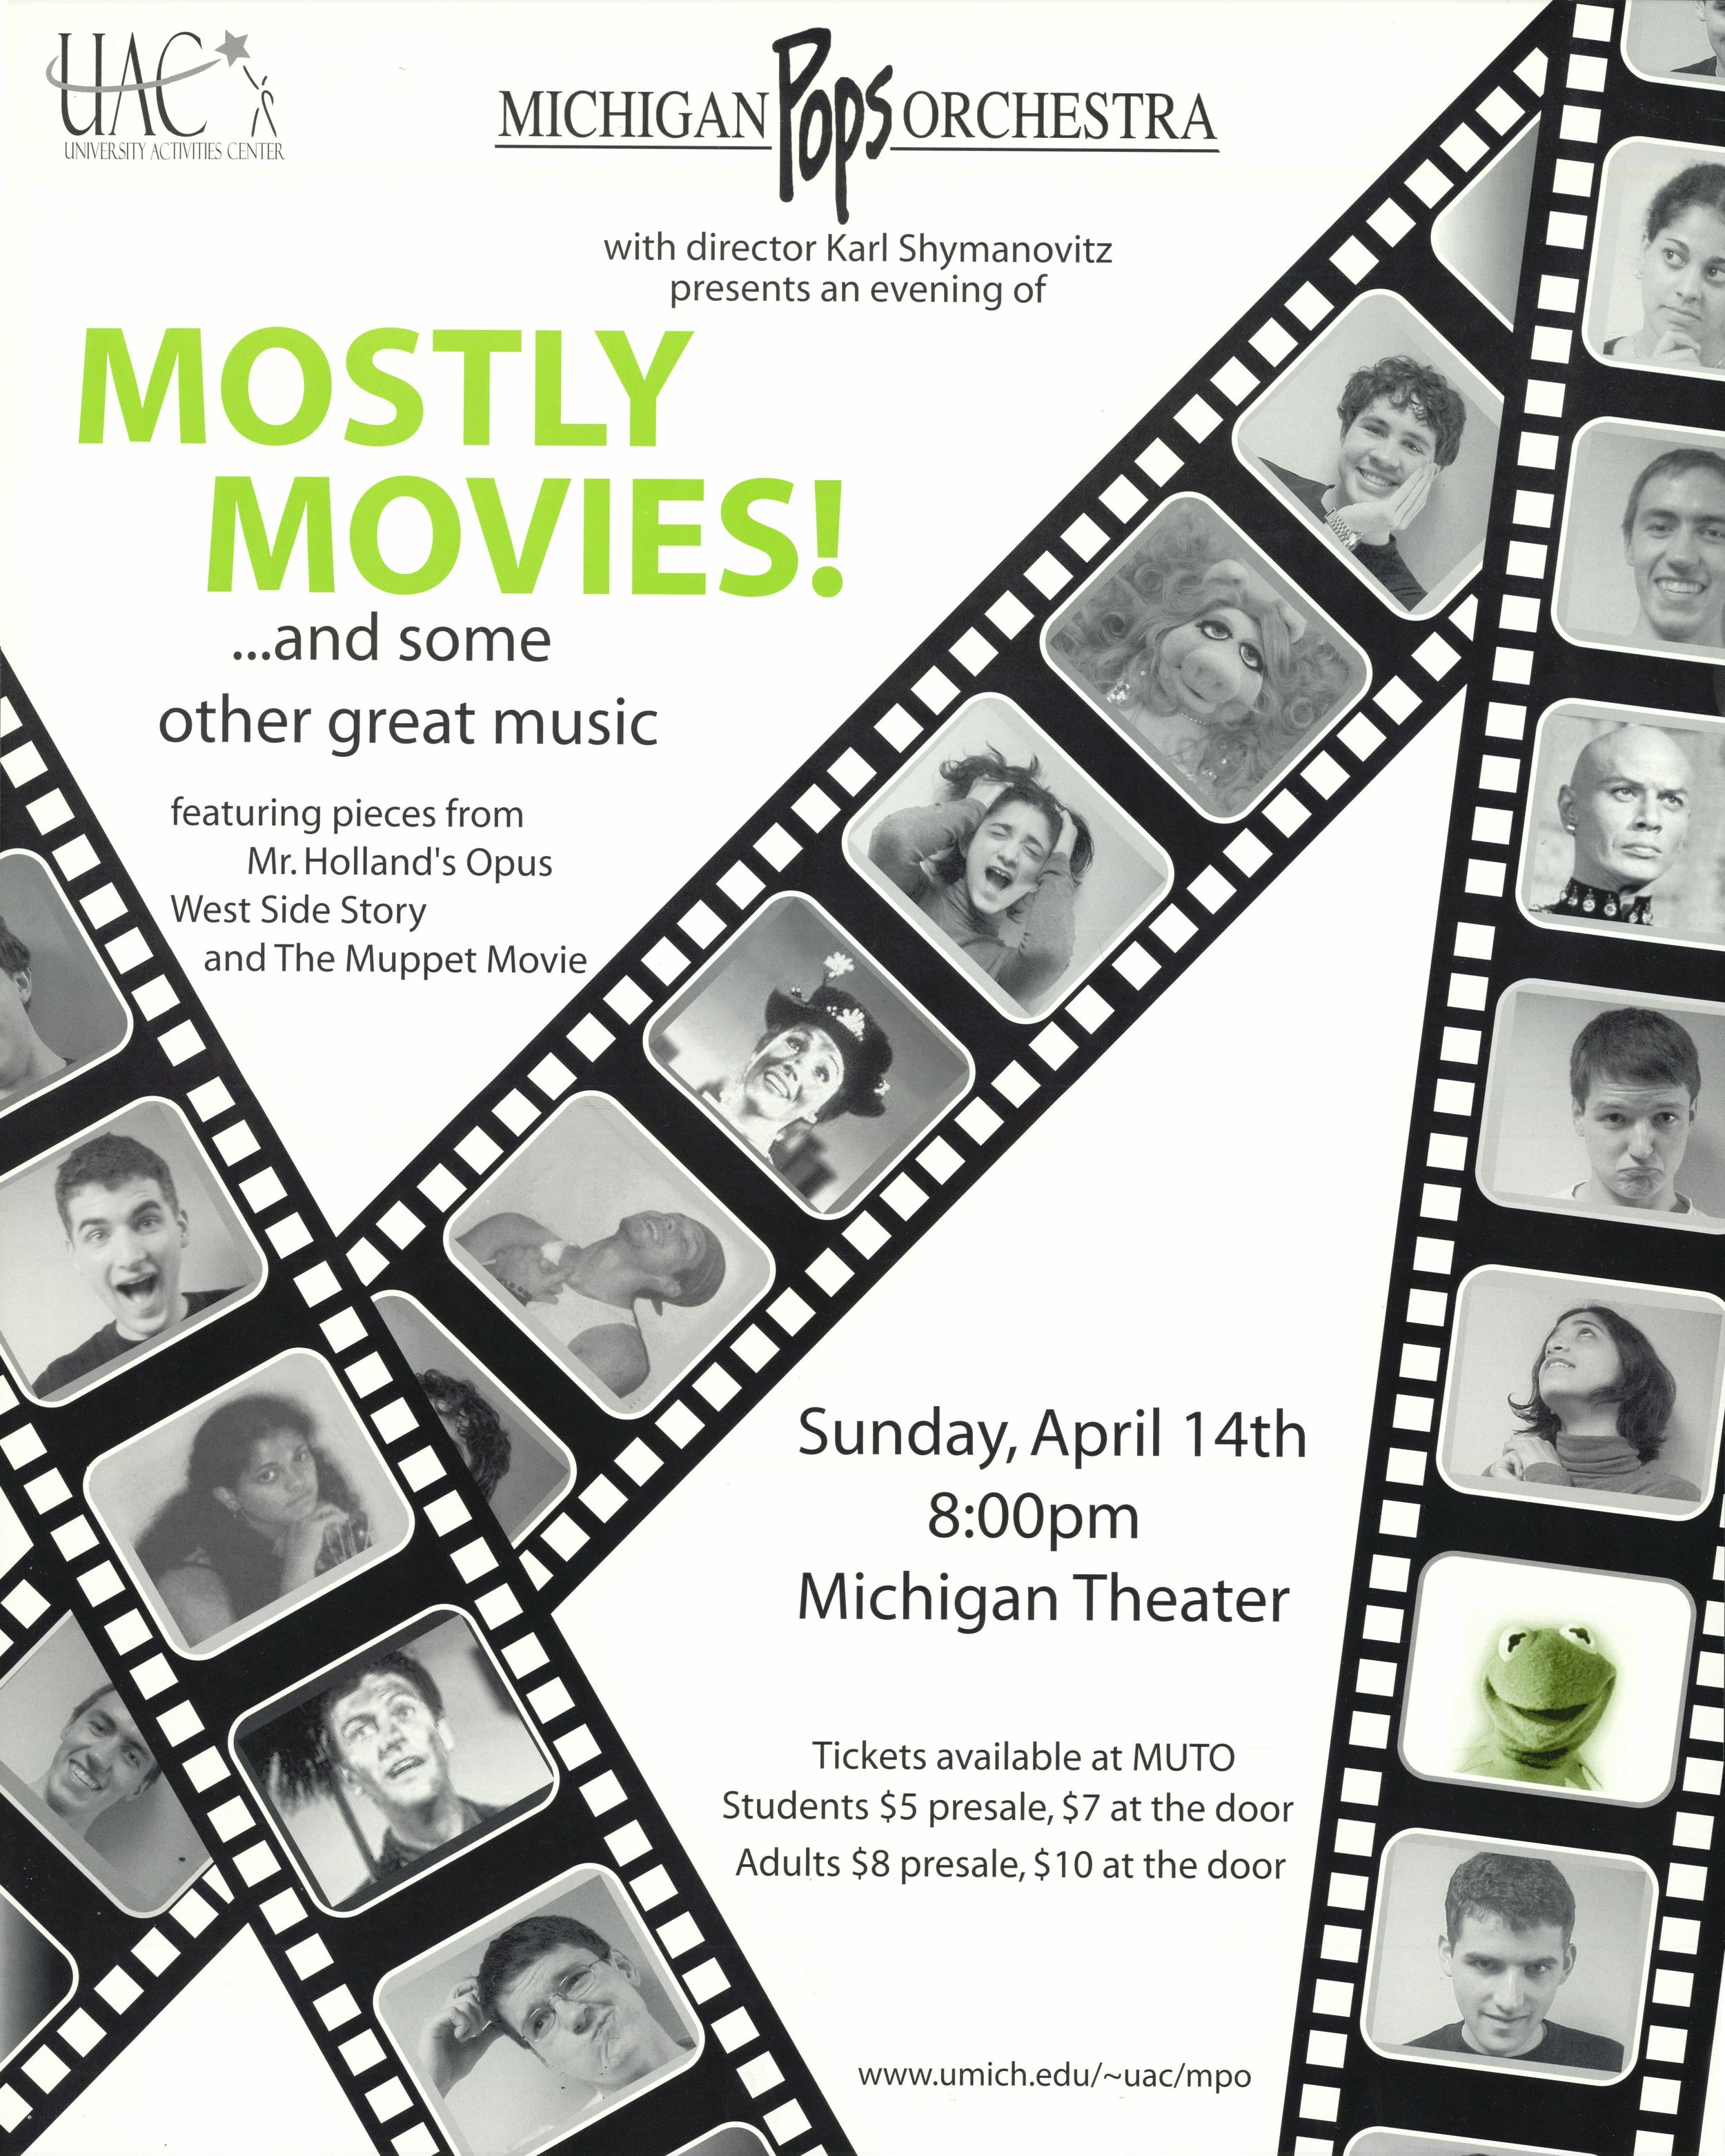 MOSTLY MOVIES!  April 14, 2002